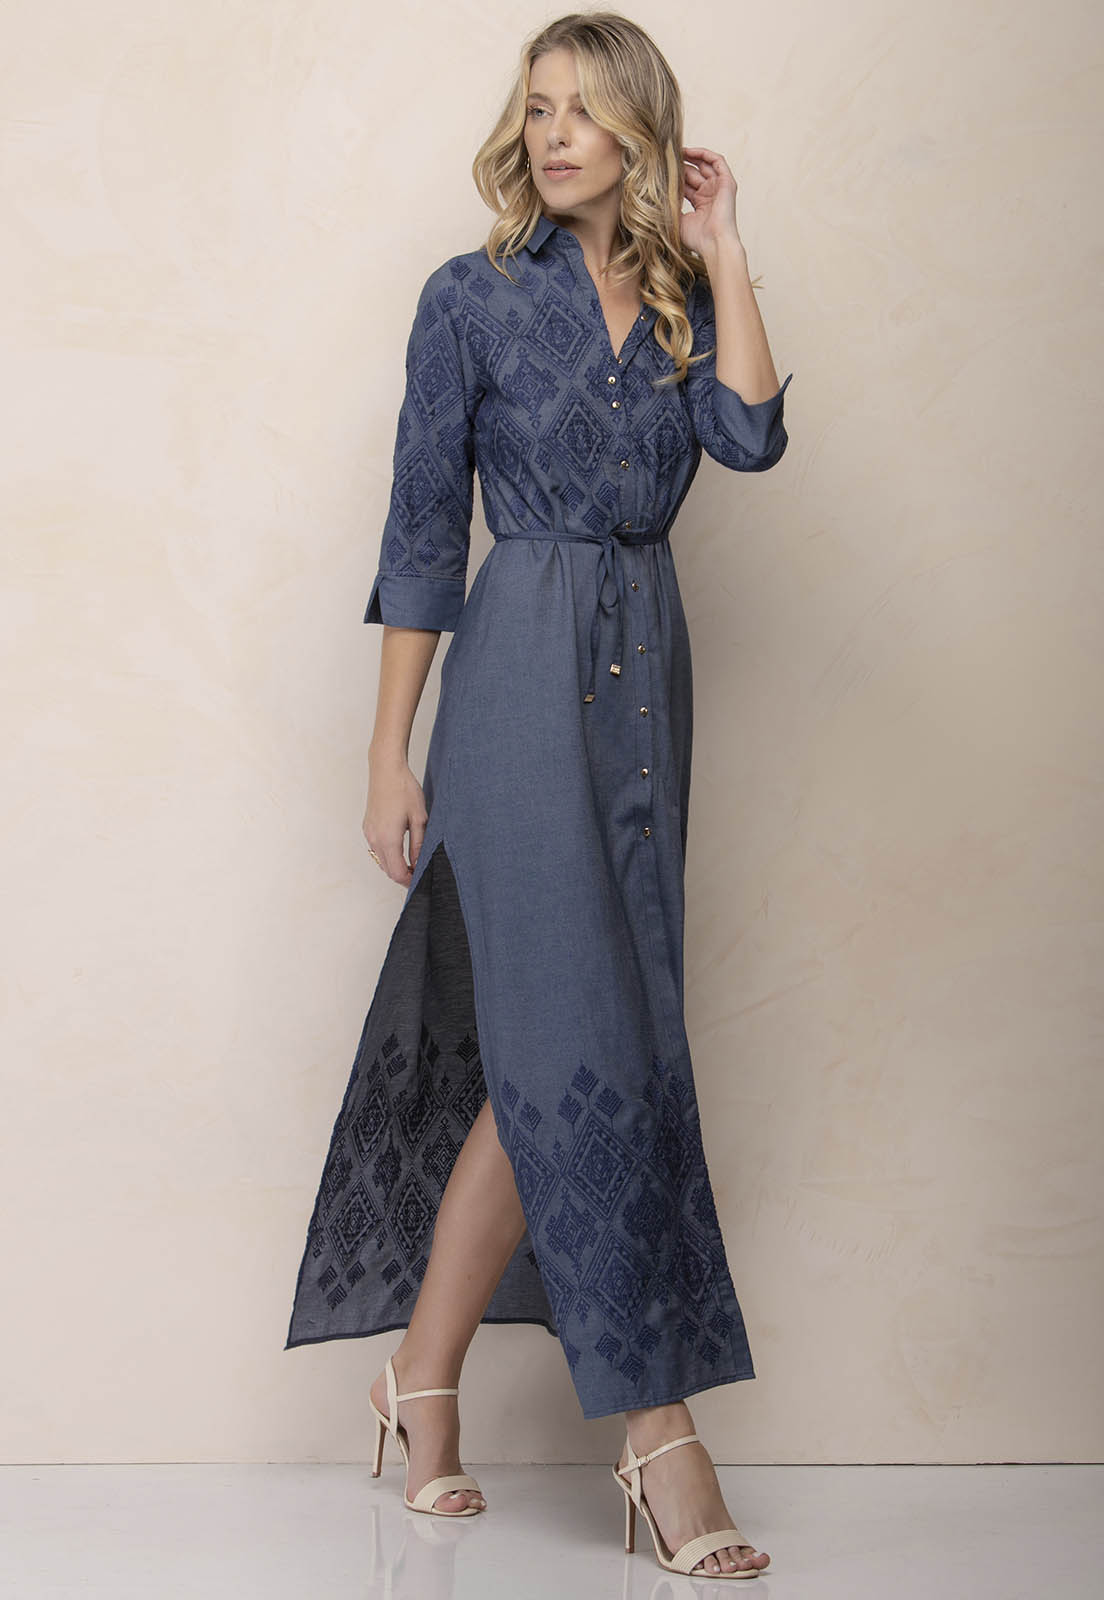 Vestido Jeans Shirtdress Bordado Zaiko 2526